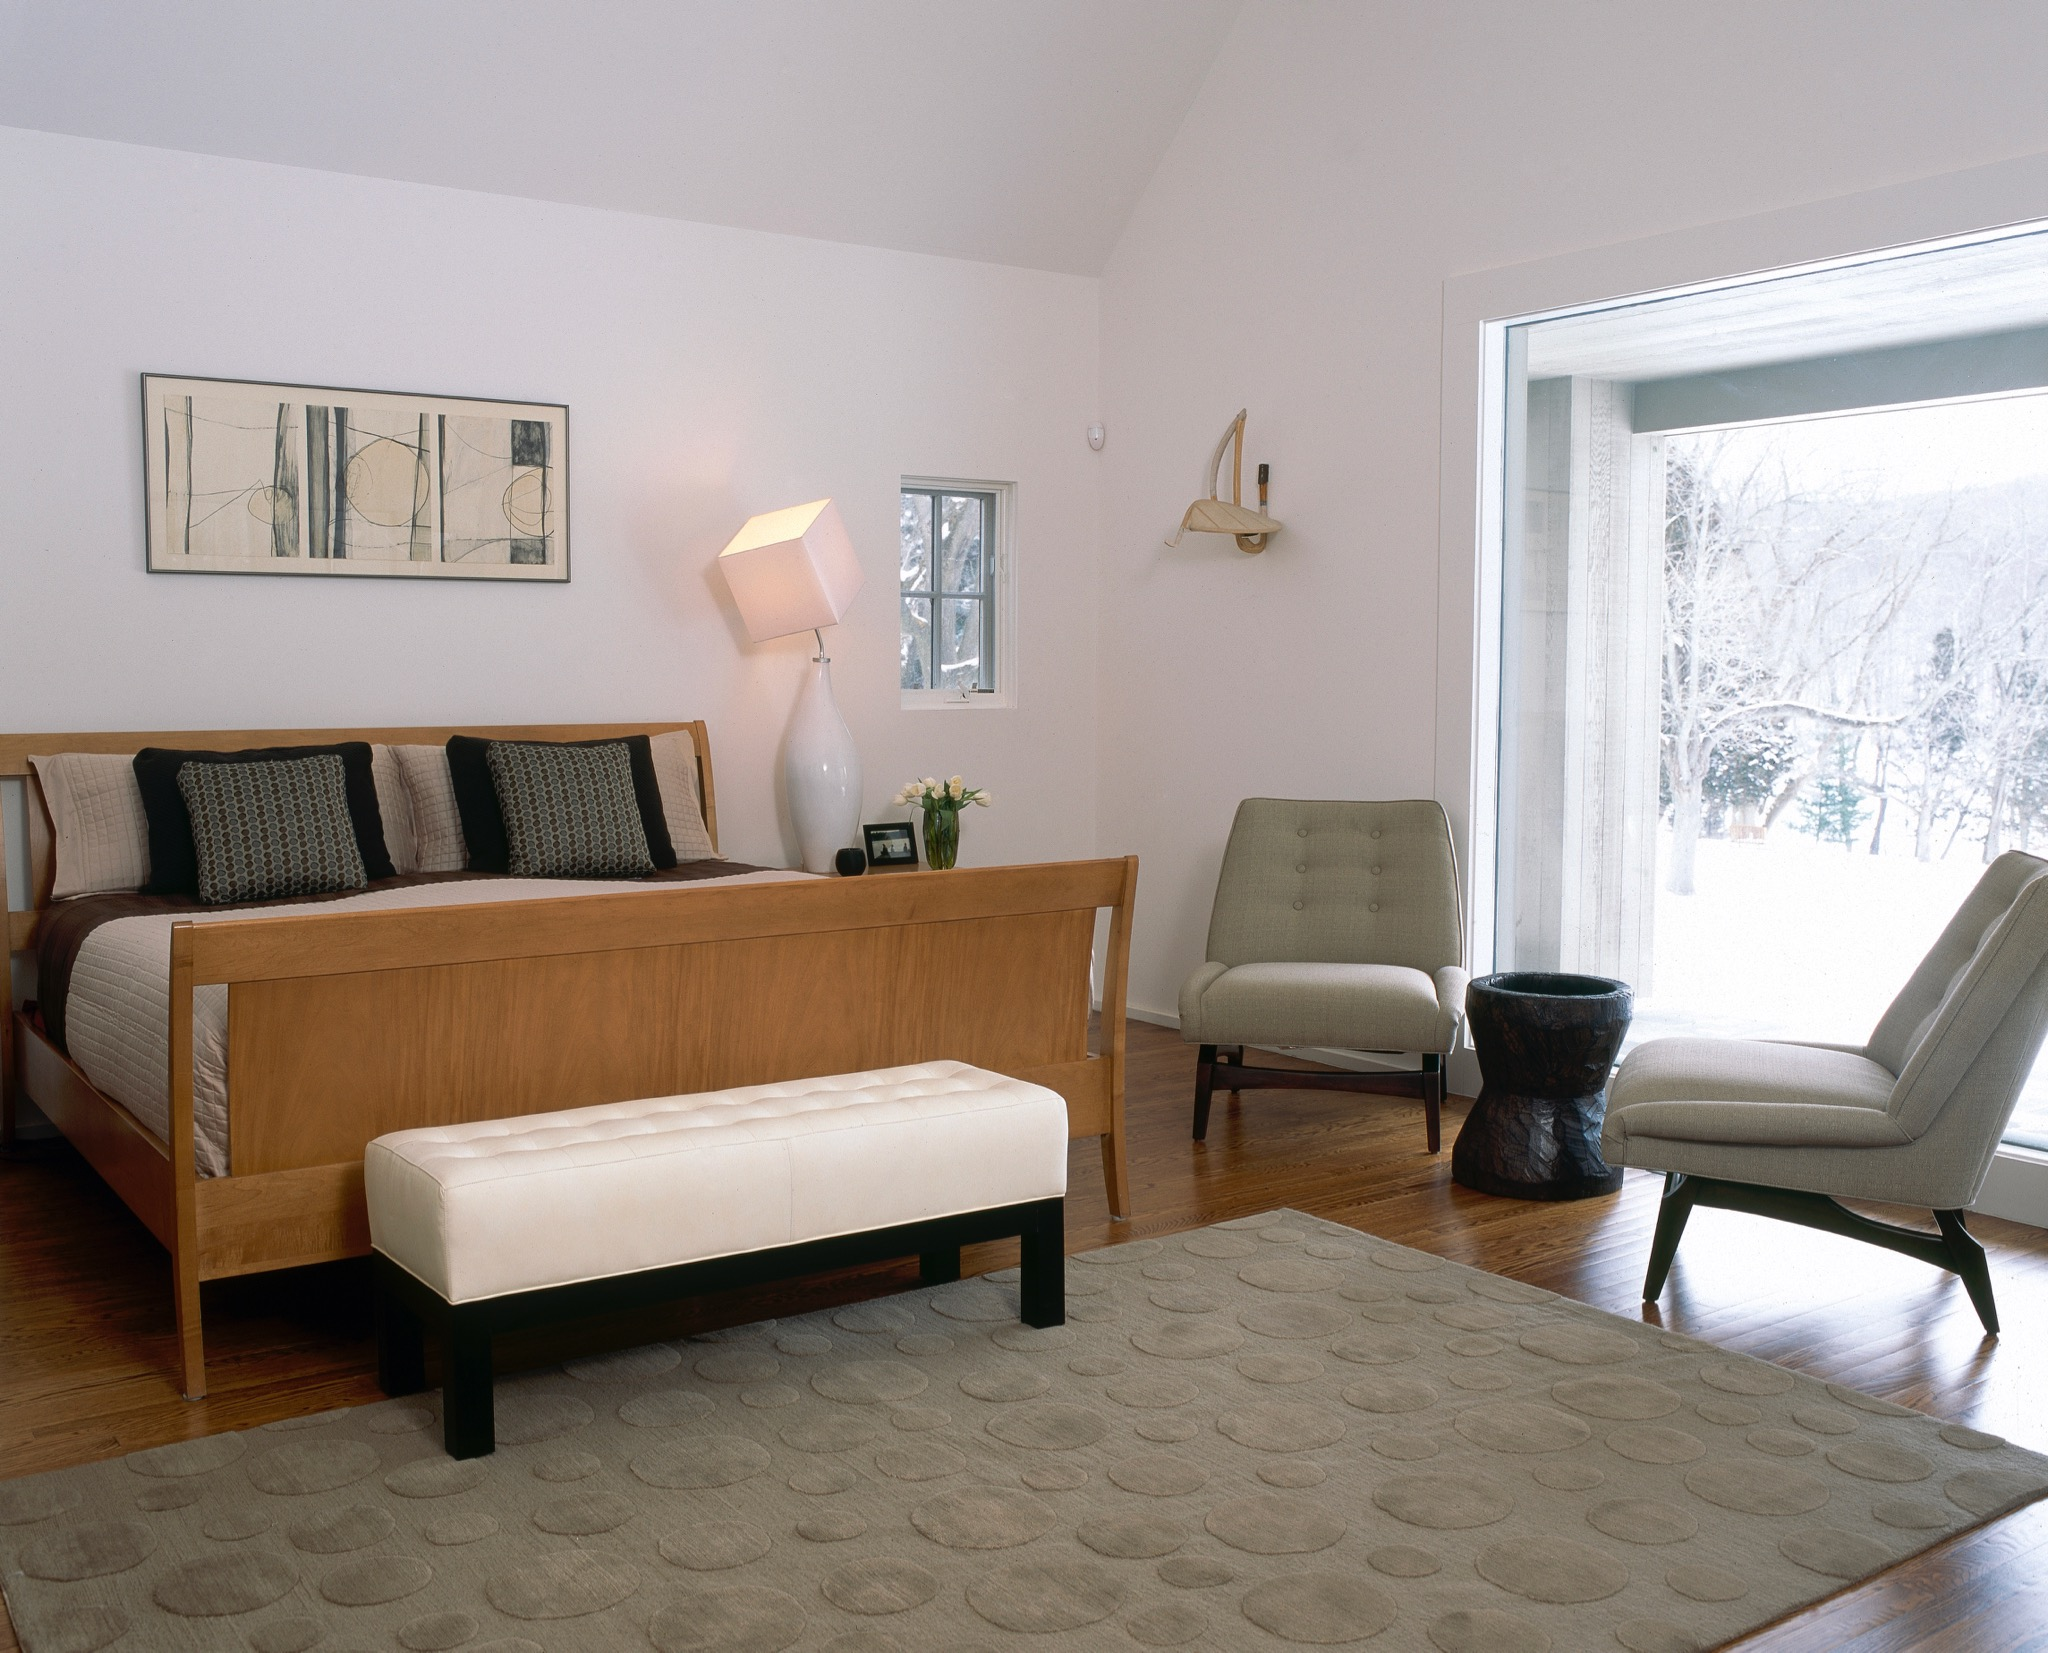 Bedroom with white walls and wooden bed in winter